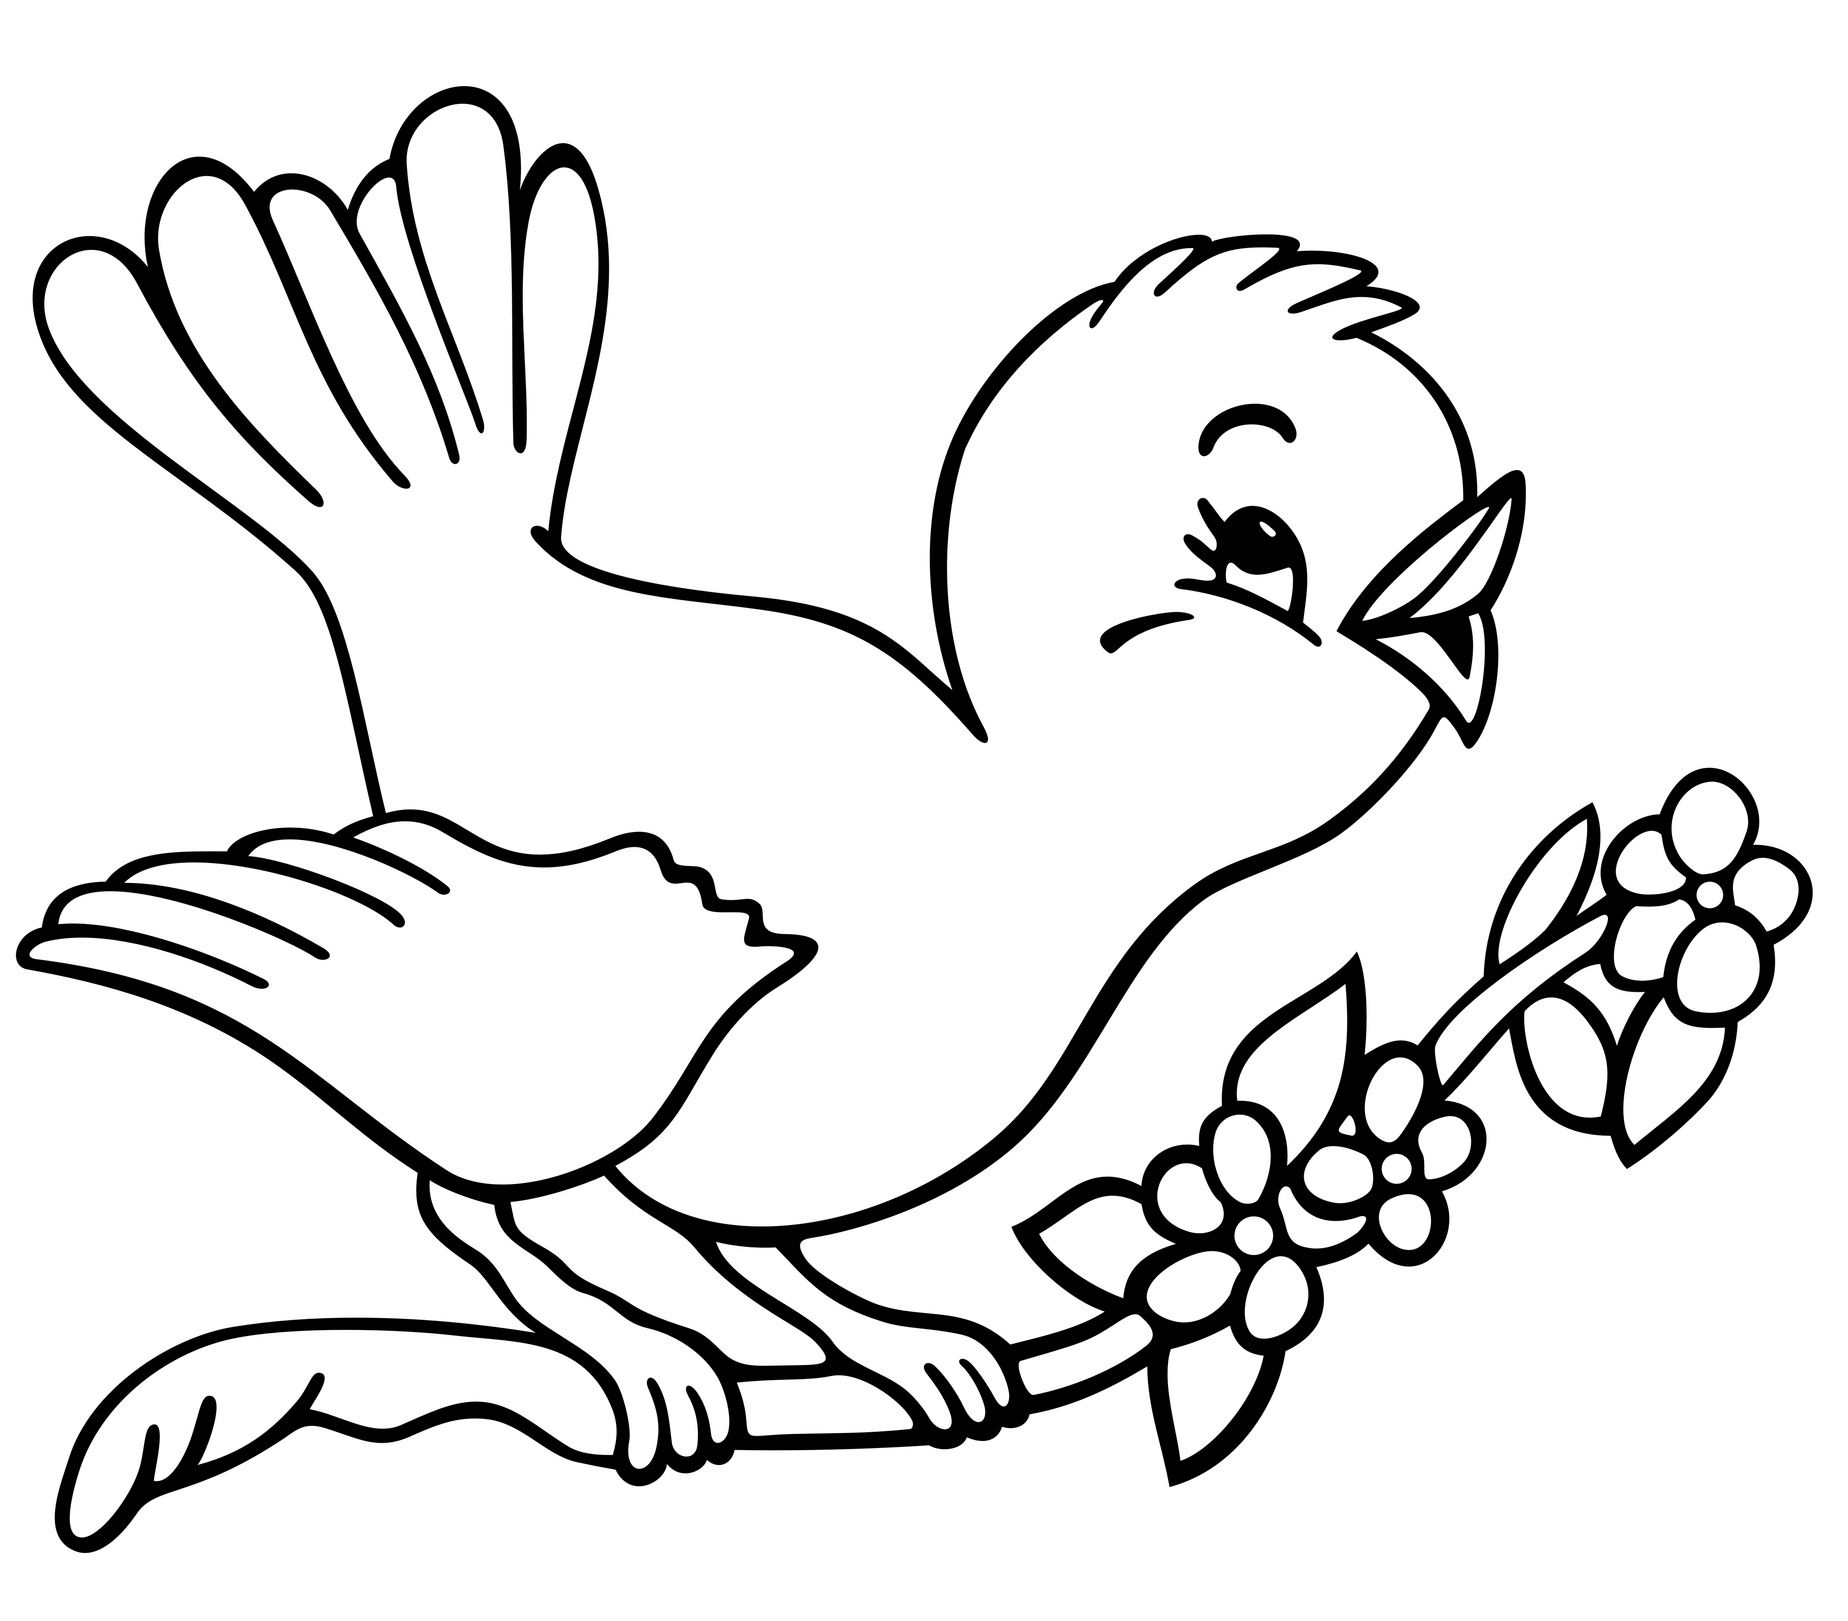 - Free Bird Coloring Pages For Kids Animals (With Images) Bird